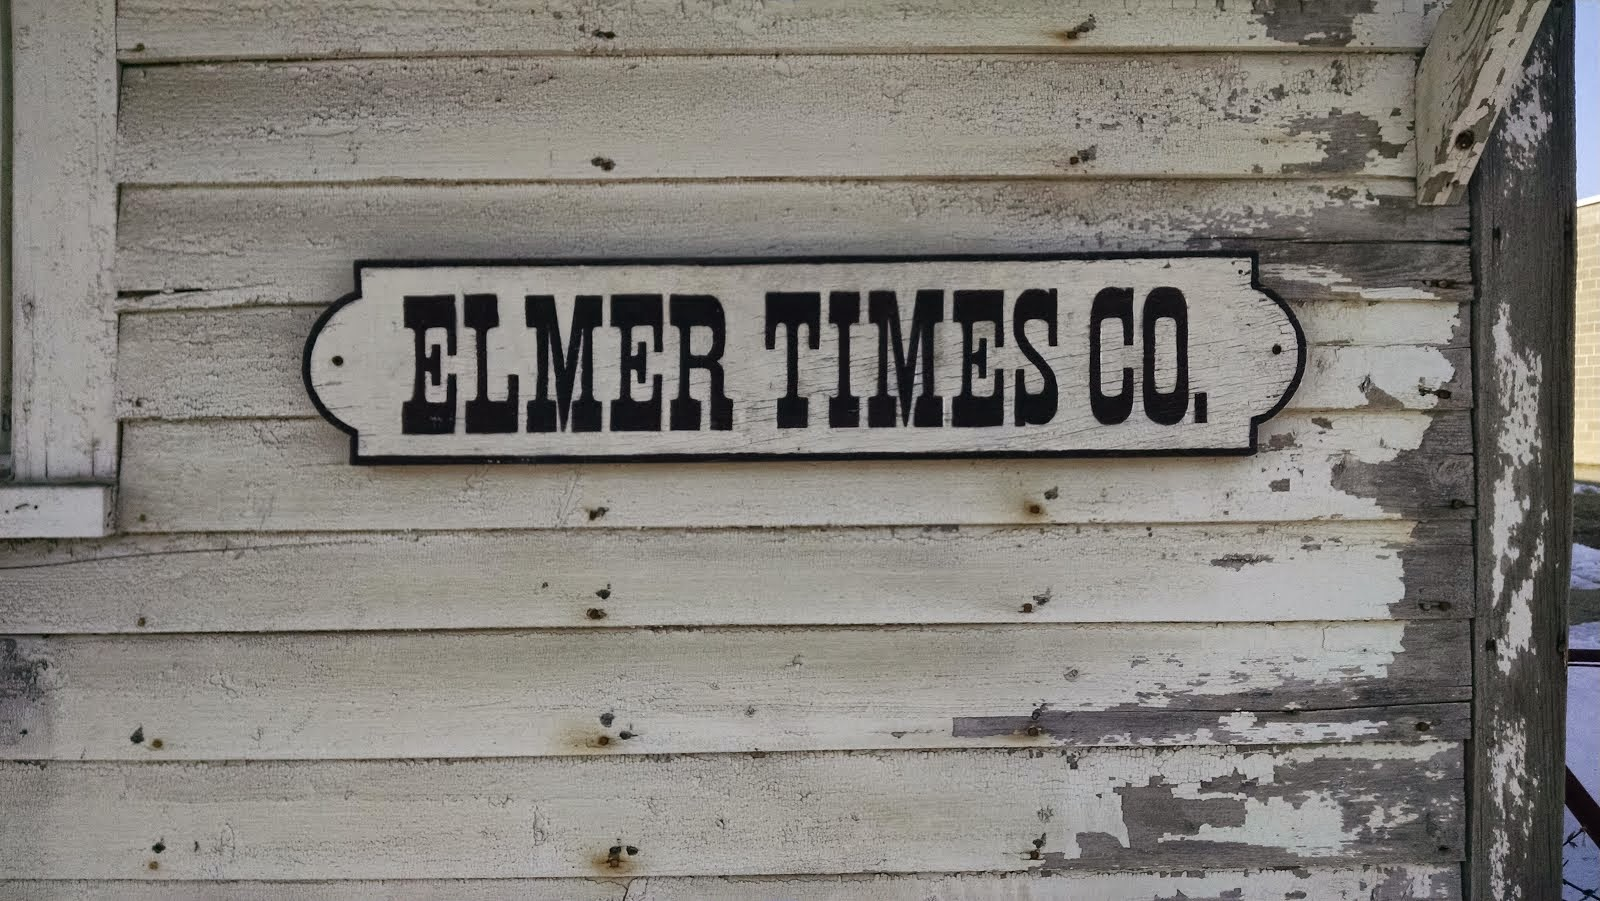 Elmer Times Company sign